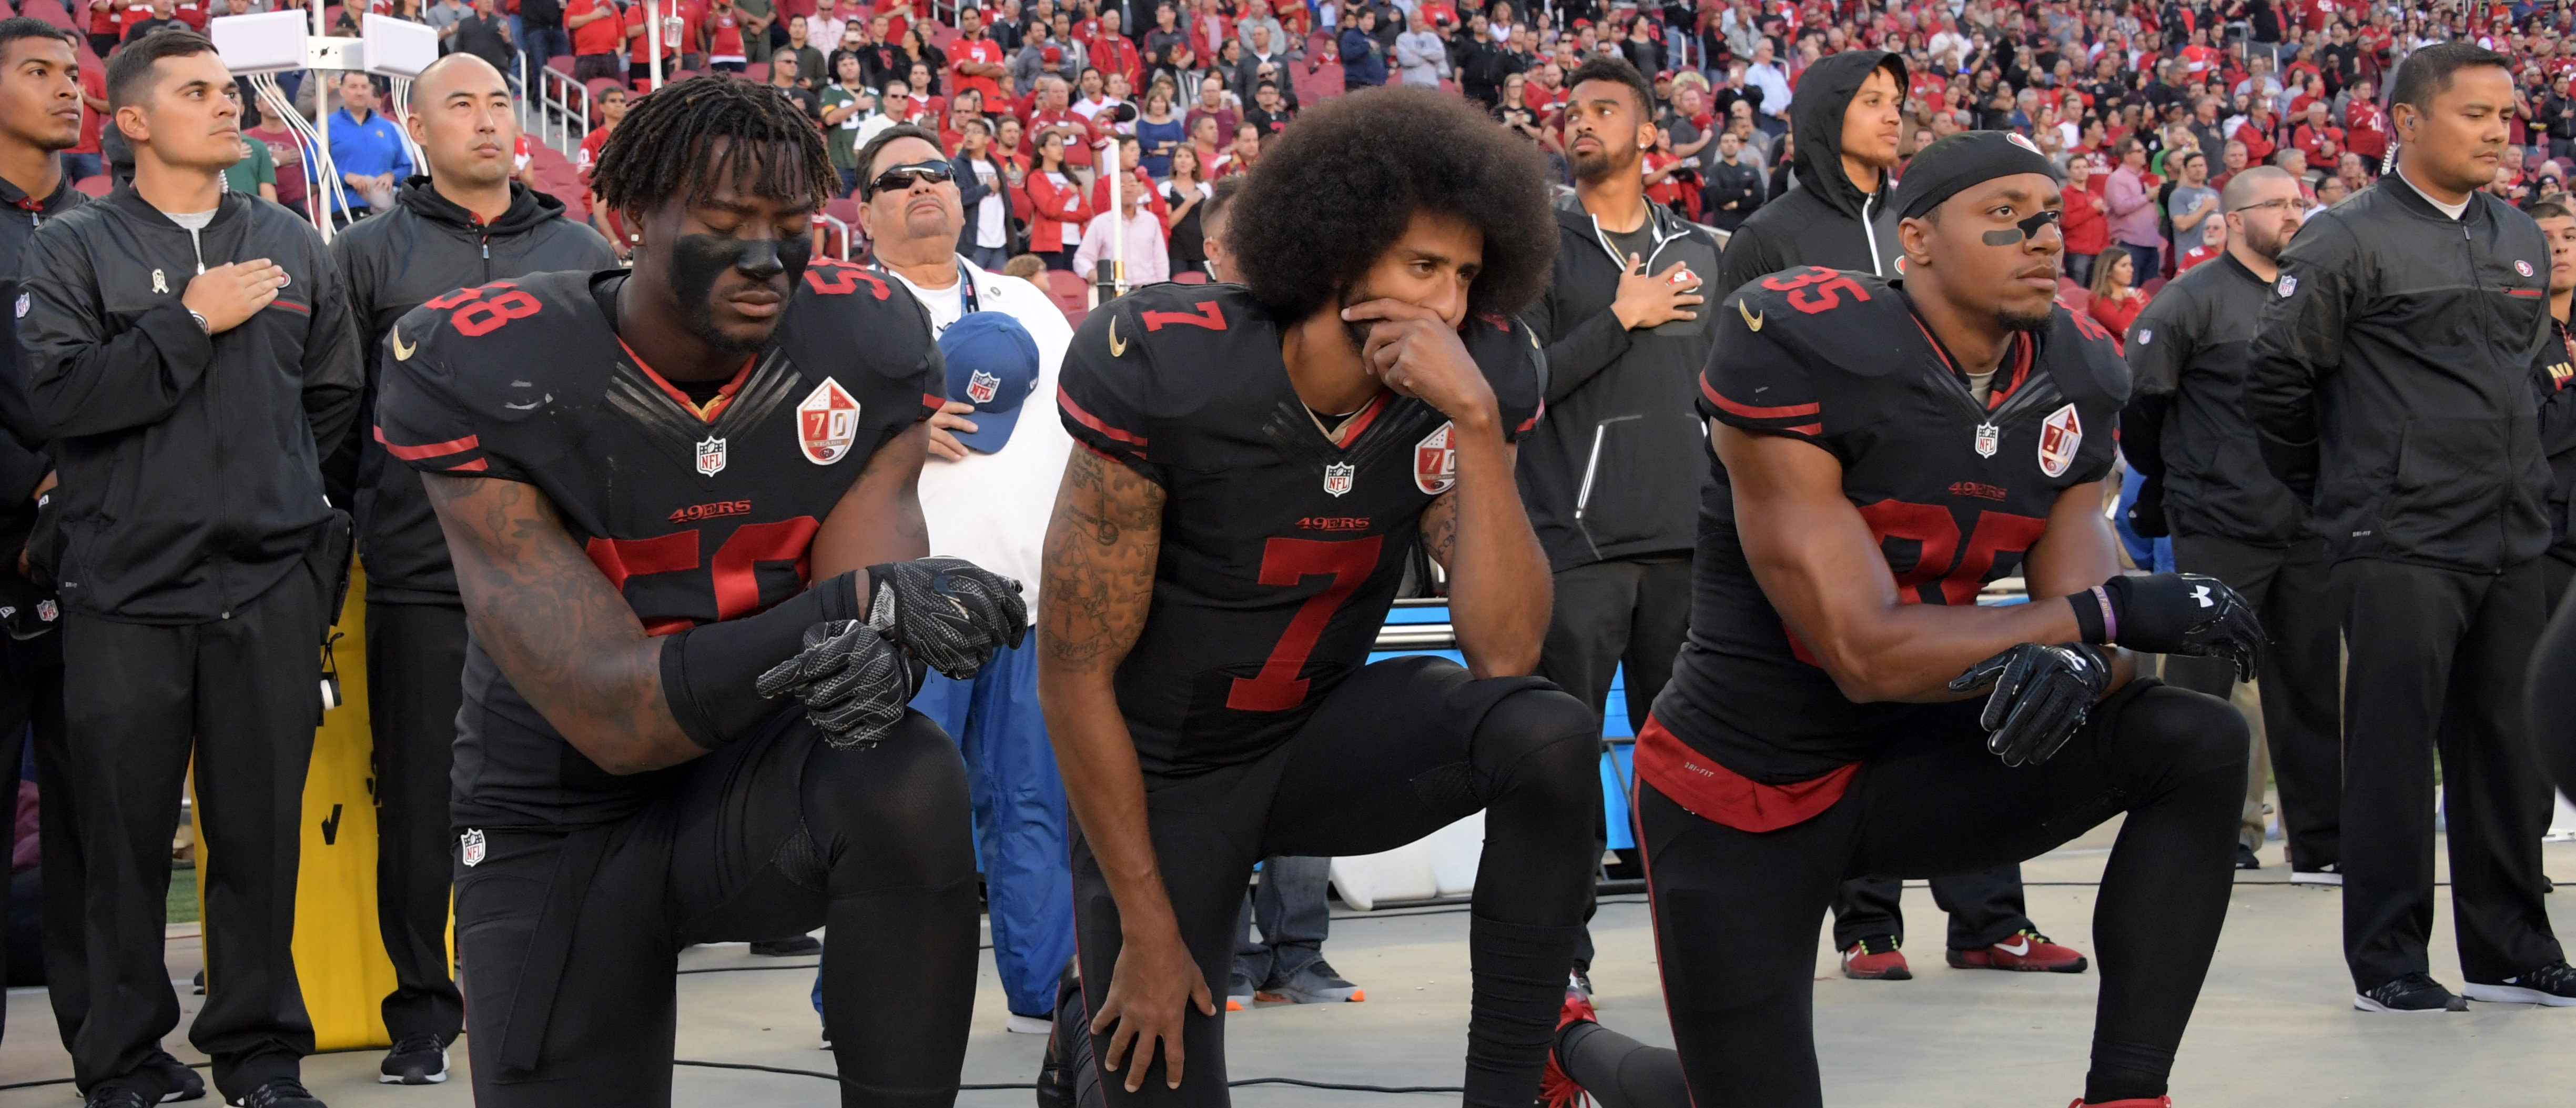 Oct 6, 2016; Santa Clara, CA, USA; San Francisco 49ers outside linebacker Eli Harold (58), quarterback Colin Kaepernick (7) and free safety Eric Reid (35) kneel in protest during the playing of the national anthem before a NFL game against the Arizona Cardinals at Levi's Stadium. Mandatory Credit: Kirby Lee-USA TODAY Sports